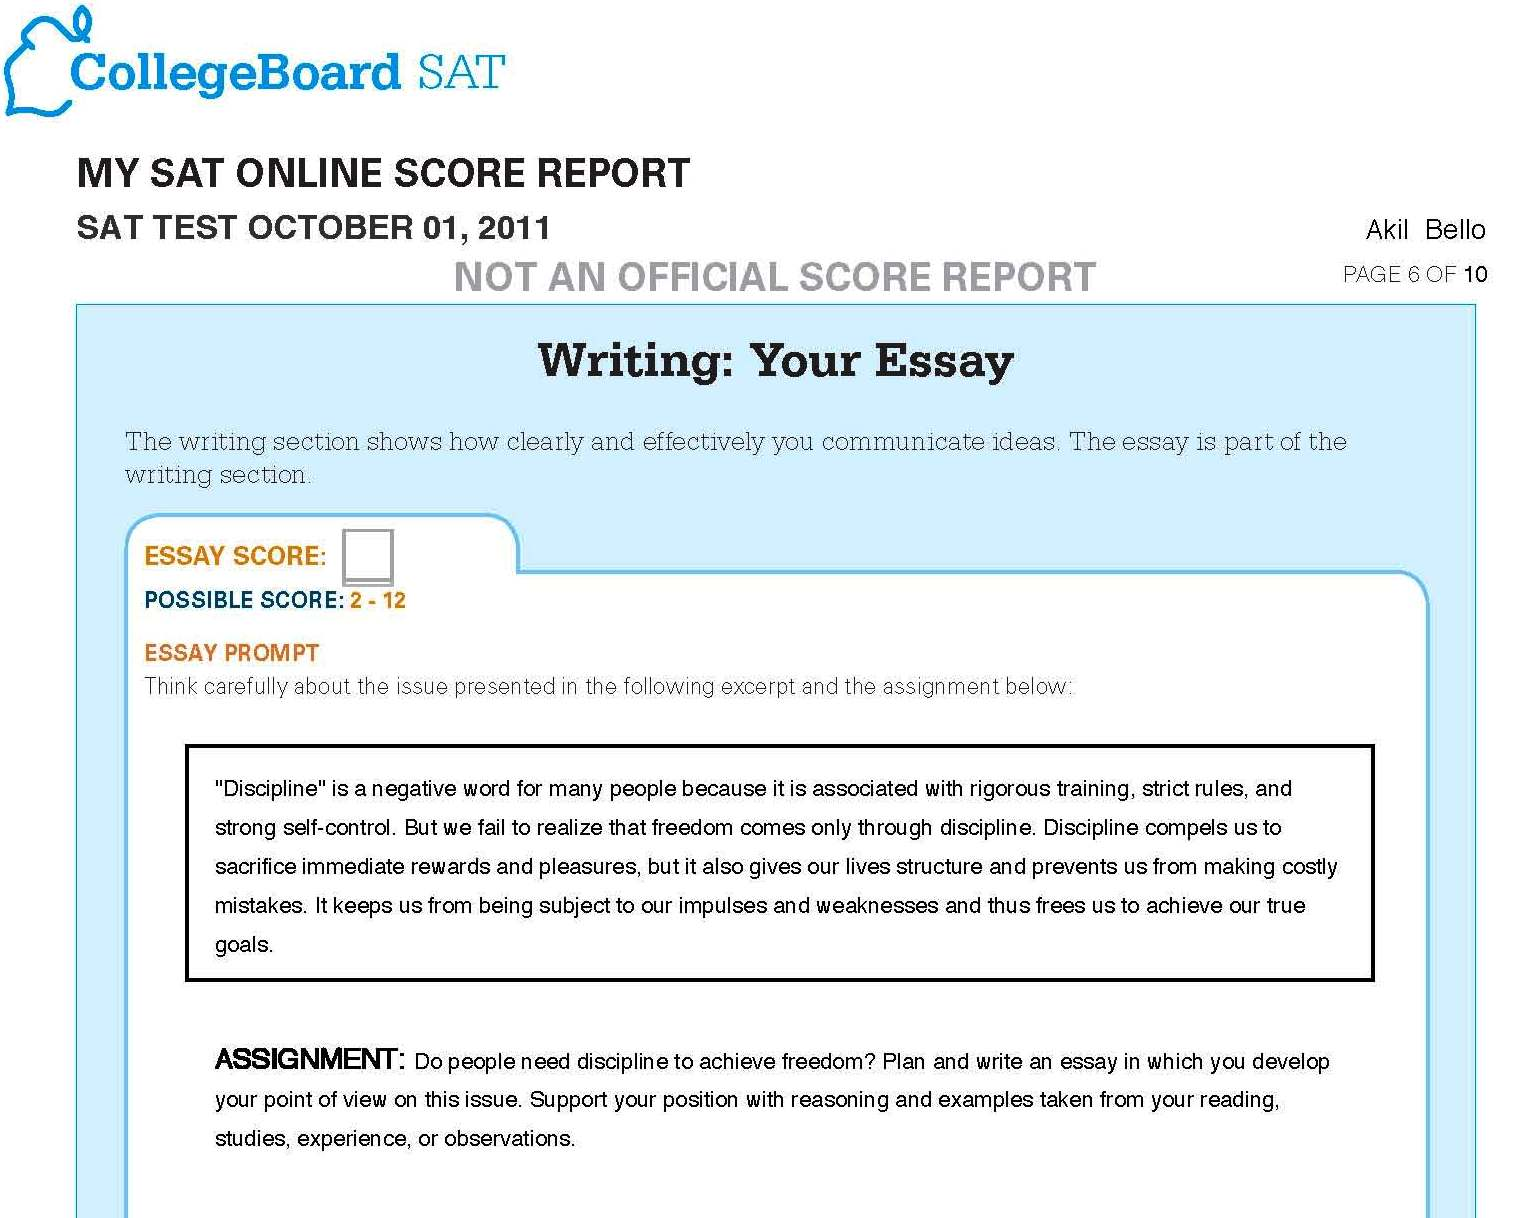 023 Sat Essay Score Test How To Write Step By Pdf Faster Formula Prepscholars Stirring Release Average Uc Berkeley For Harvard